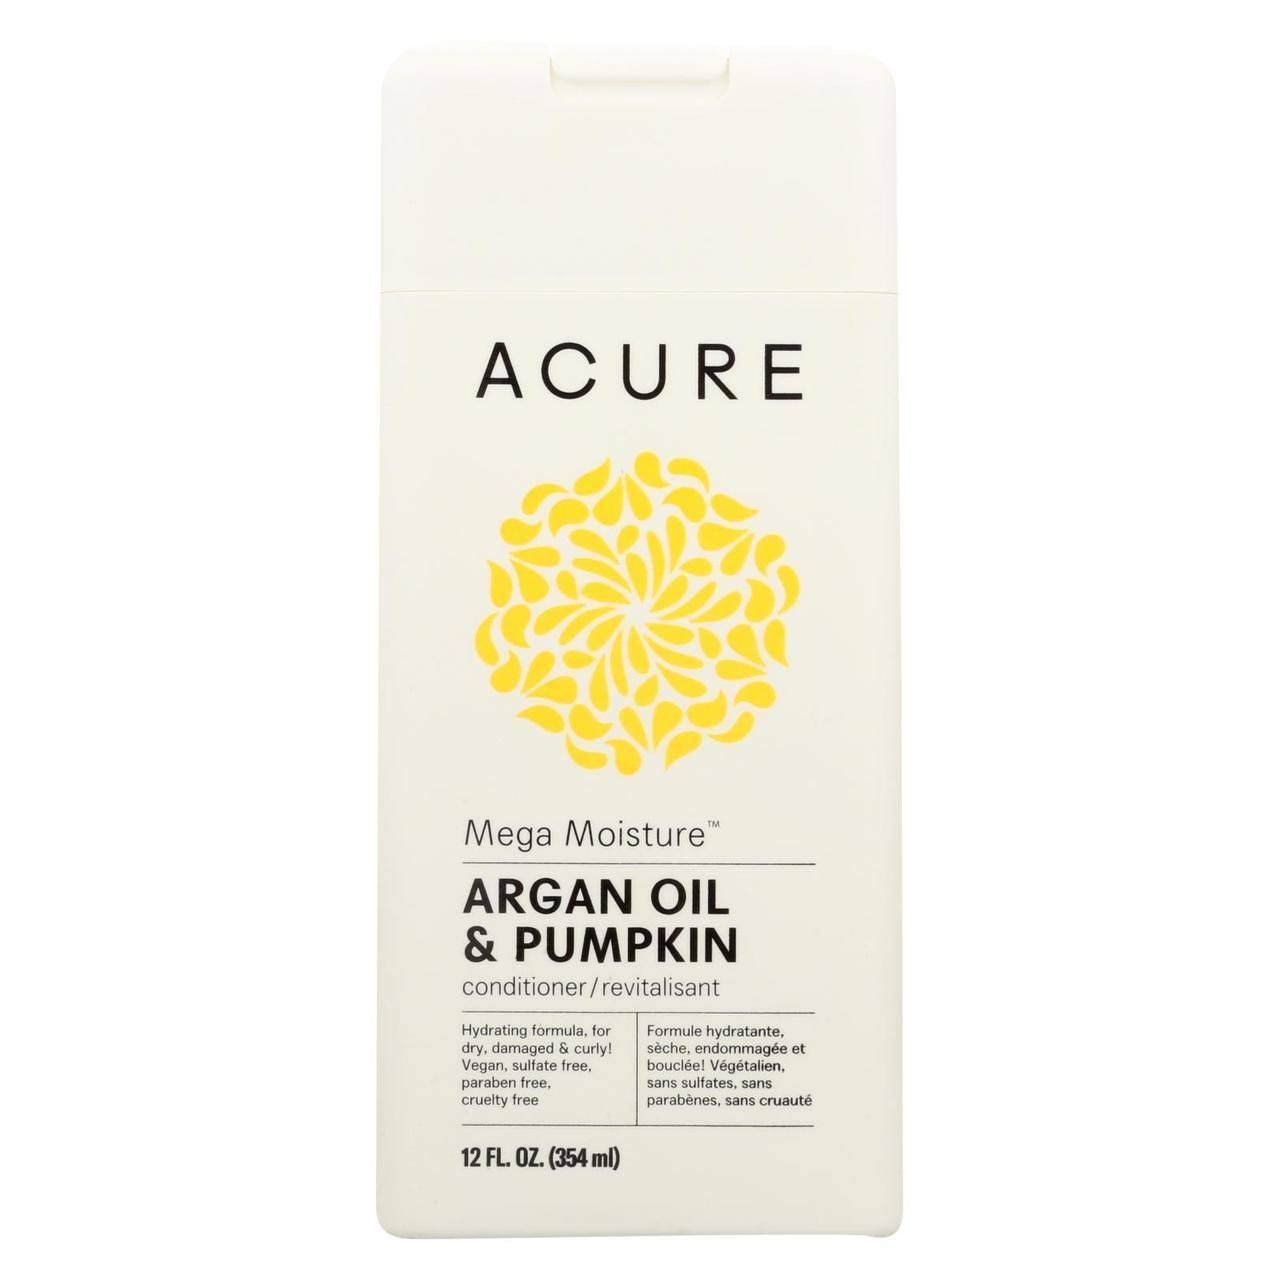 Acure Mega Moisture Conditioner - Argan Oil and Pumpkin, 12oz